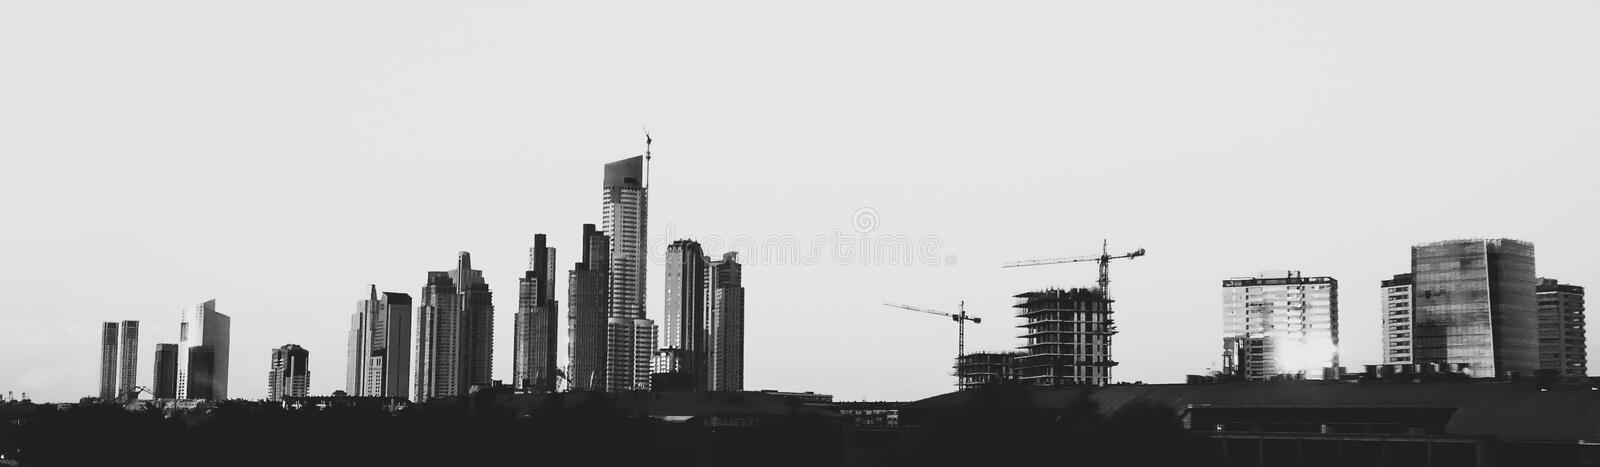 City skyline. Buenos Aires city skyline in black and white royalty free stock image